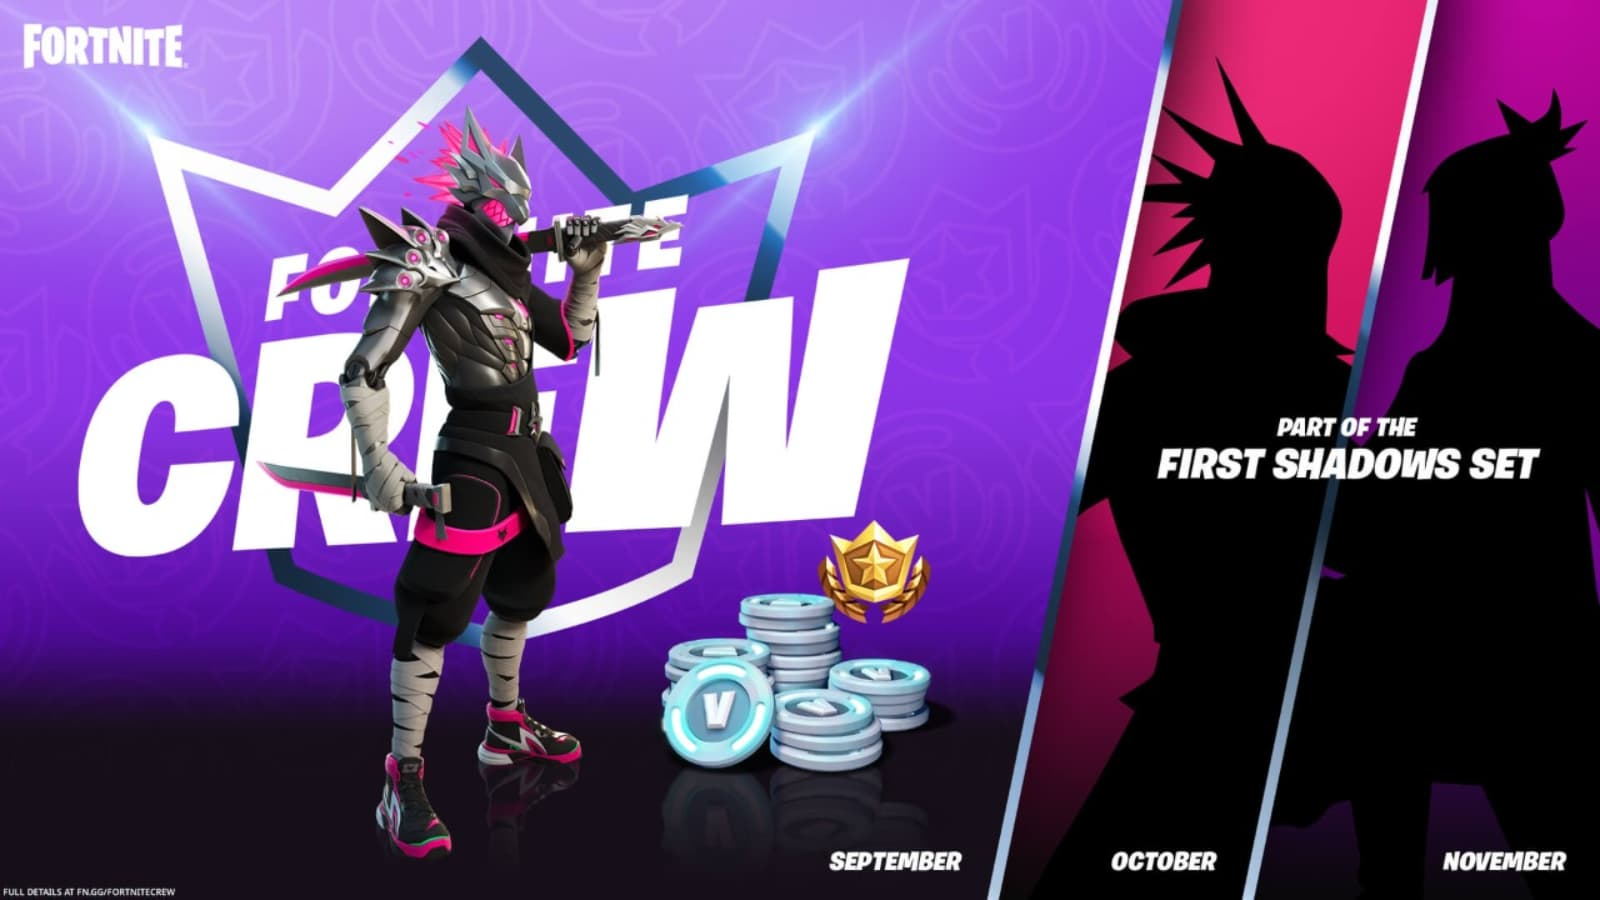 Fortnite First Shadows: Upcoming Months Crew Pack in Season 8